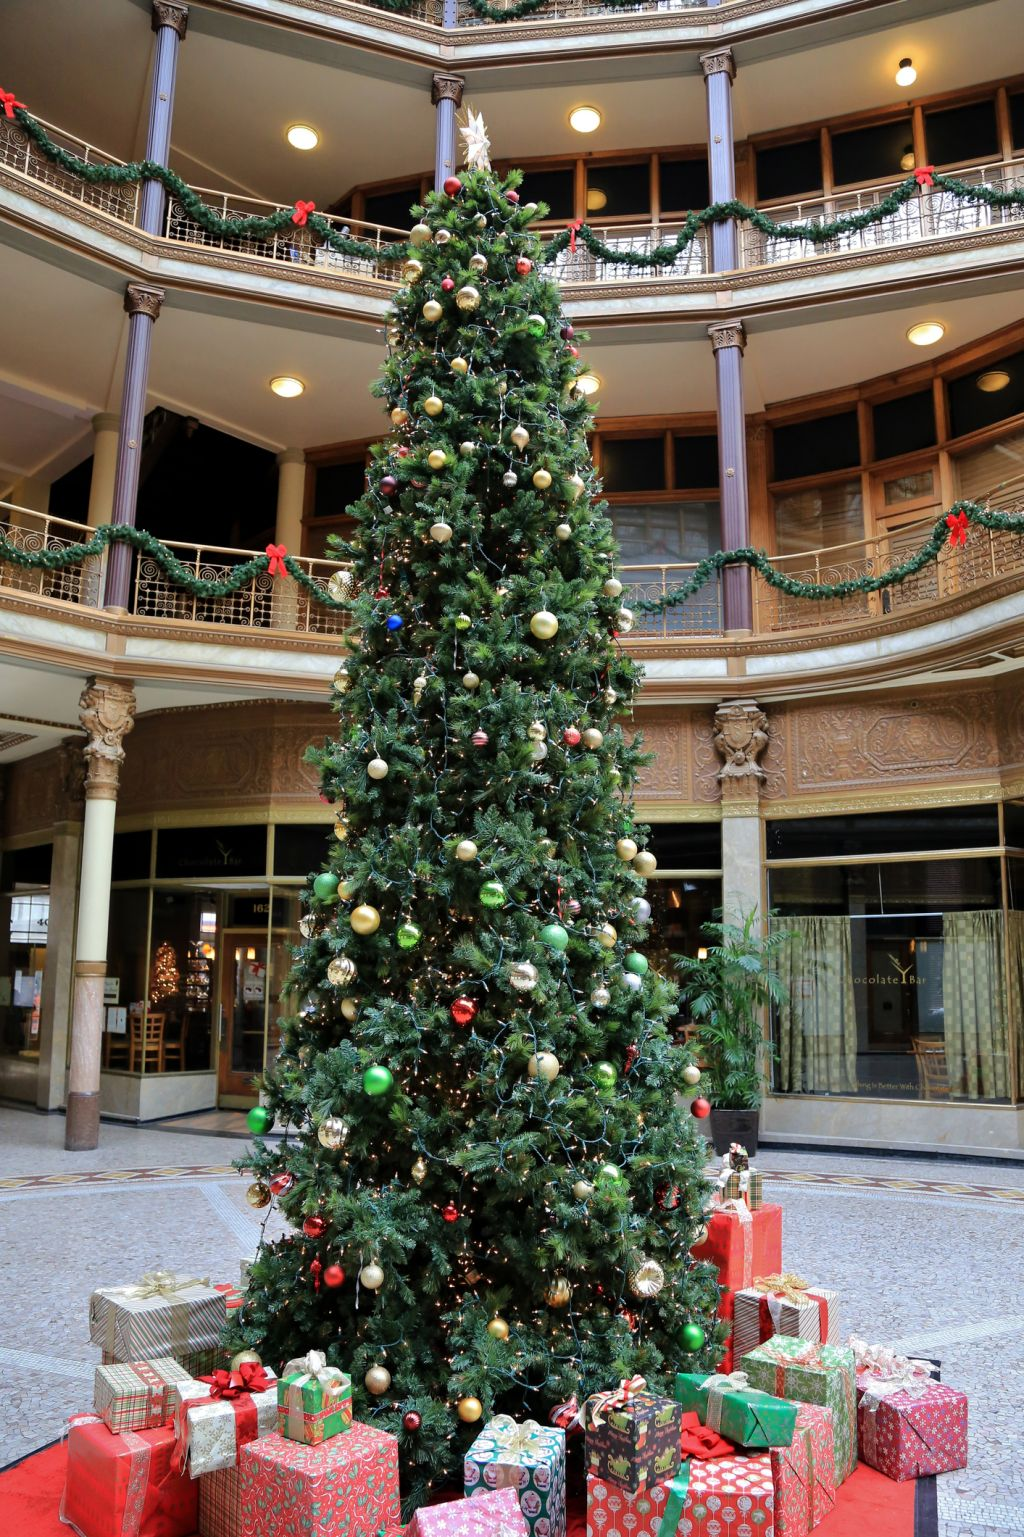 Christmas at the Historic Euclid Arcade retail shopping, Cleveland, Ohio, USA